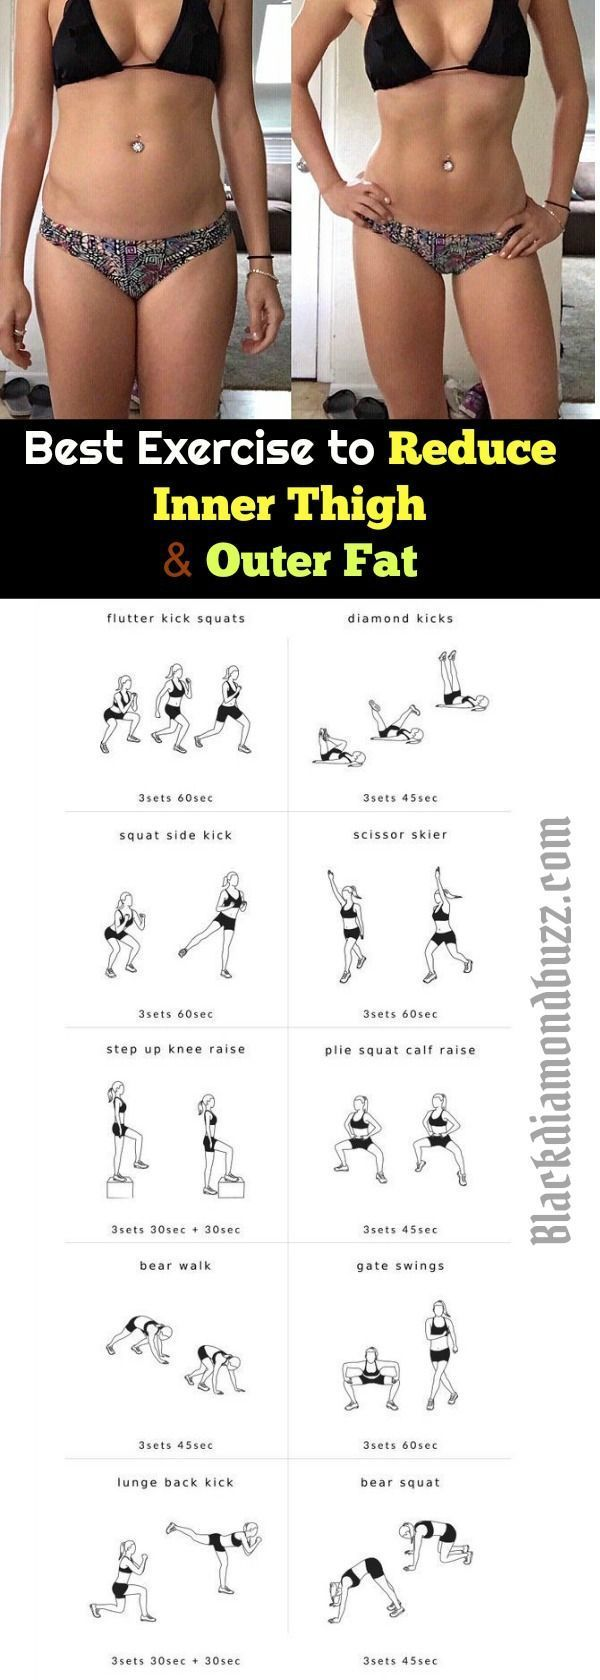 """Fitness Inspiration : Best Exercise to Reduce Inner Thigh and Outer Fat Fast in a Week: In the exercis... Fitness Inspiration : Illustration Description Best Exercise to Reduce Inner Thigh and Outer Fat Fast in a Week: In the exercise you will learn how to get rid of that suborn thigh fat and hips fat at home """"Nothing will work unless you do"""" ! -Read More – #Inspiration https://fitnessmag.tn/lifestyle/inspiration/fitness-inspiration-best-exercise-to-r"""